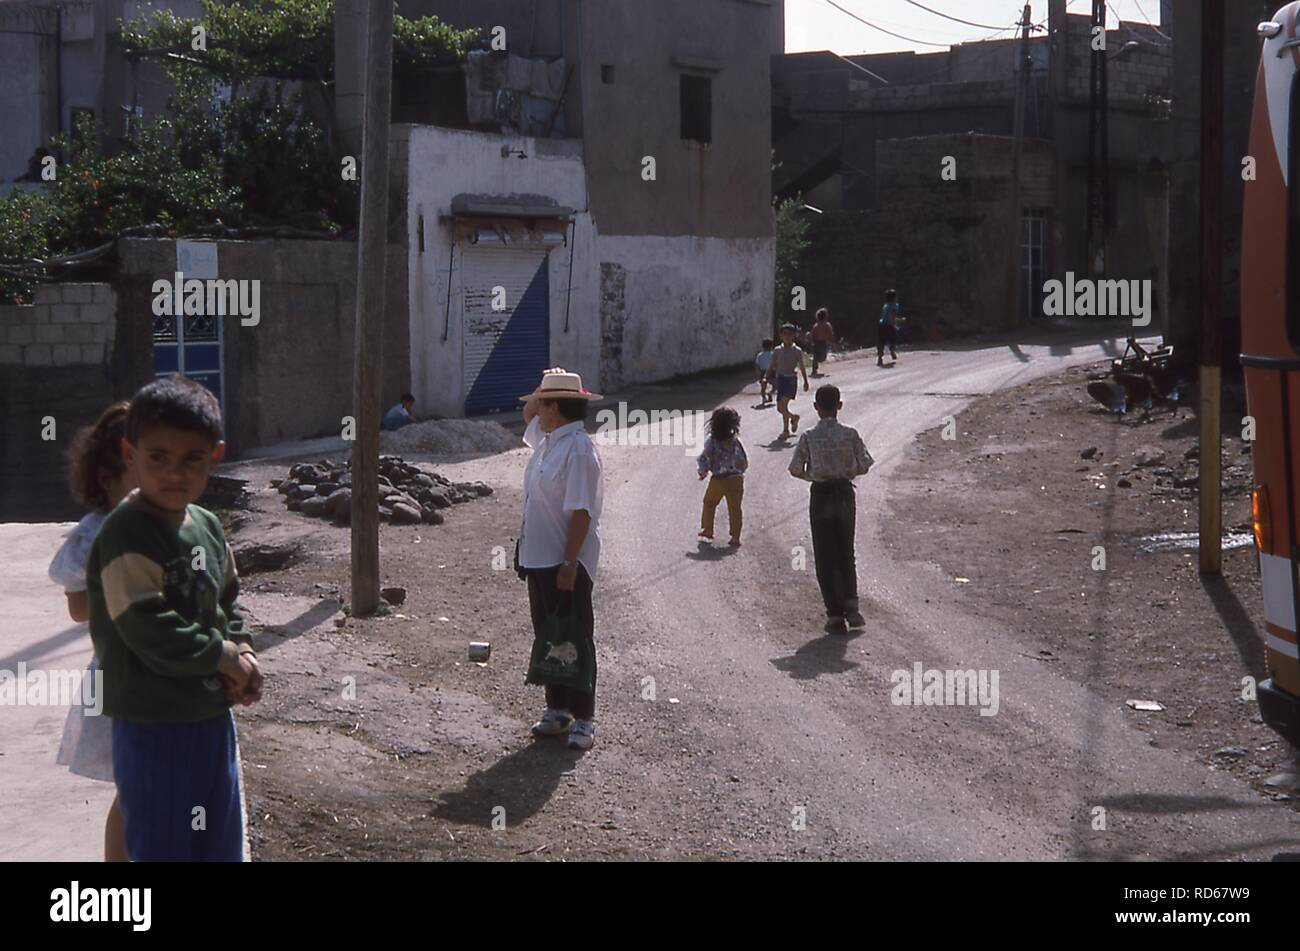 Scene of children playing on a dirt road in the town of Qalaat al-Madiq, Syria, June, 1994. () - Stock Image